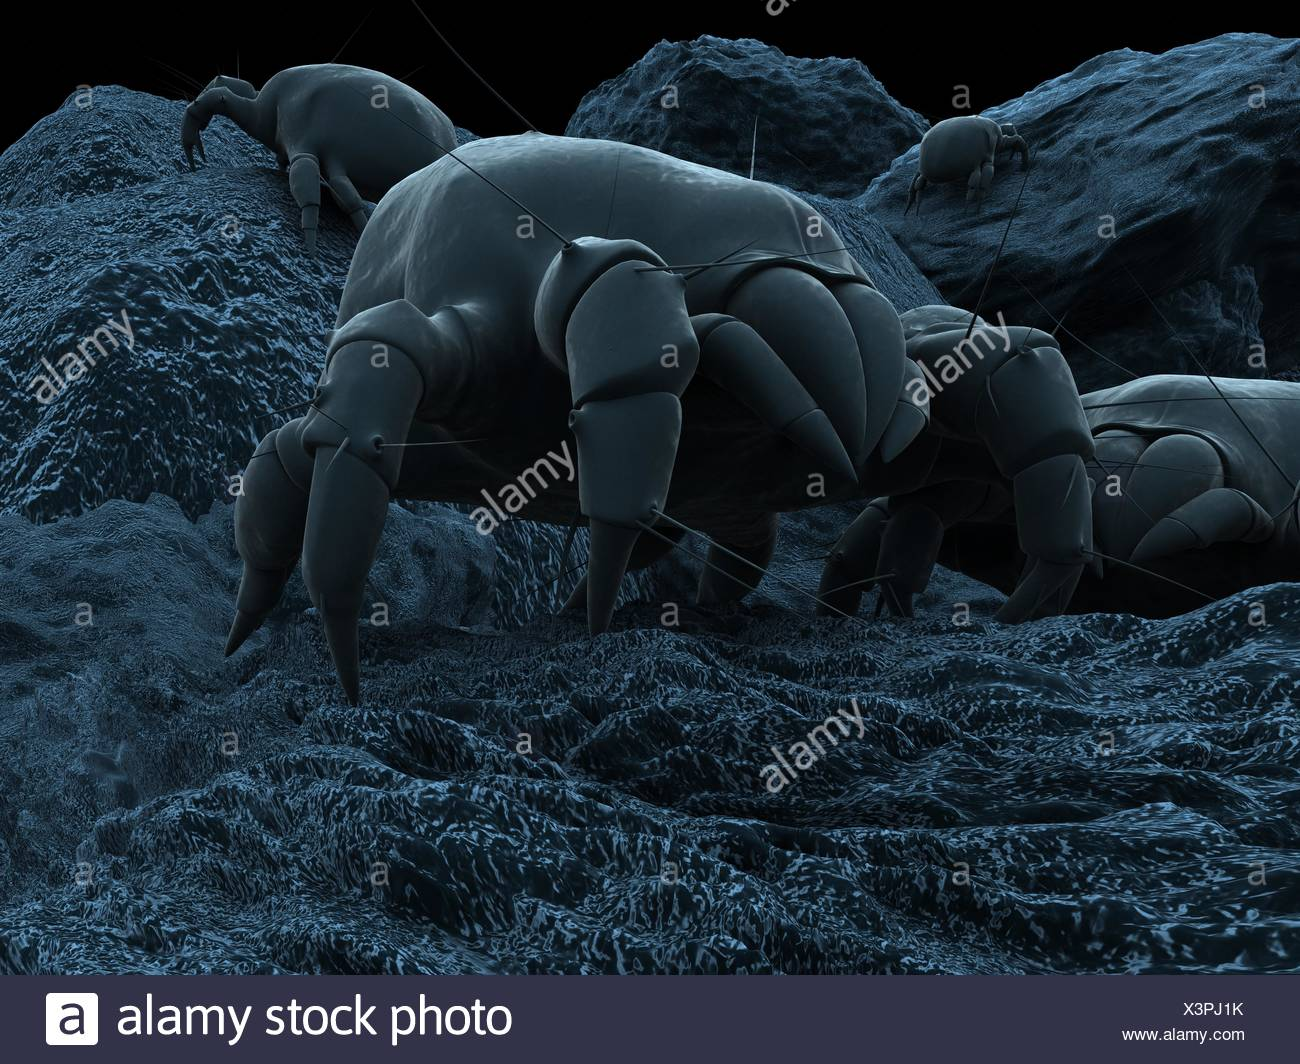 insect dust hygiene allergy mite bed dusty dirty bug bite micro electron - Stock Image